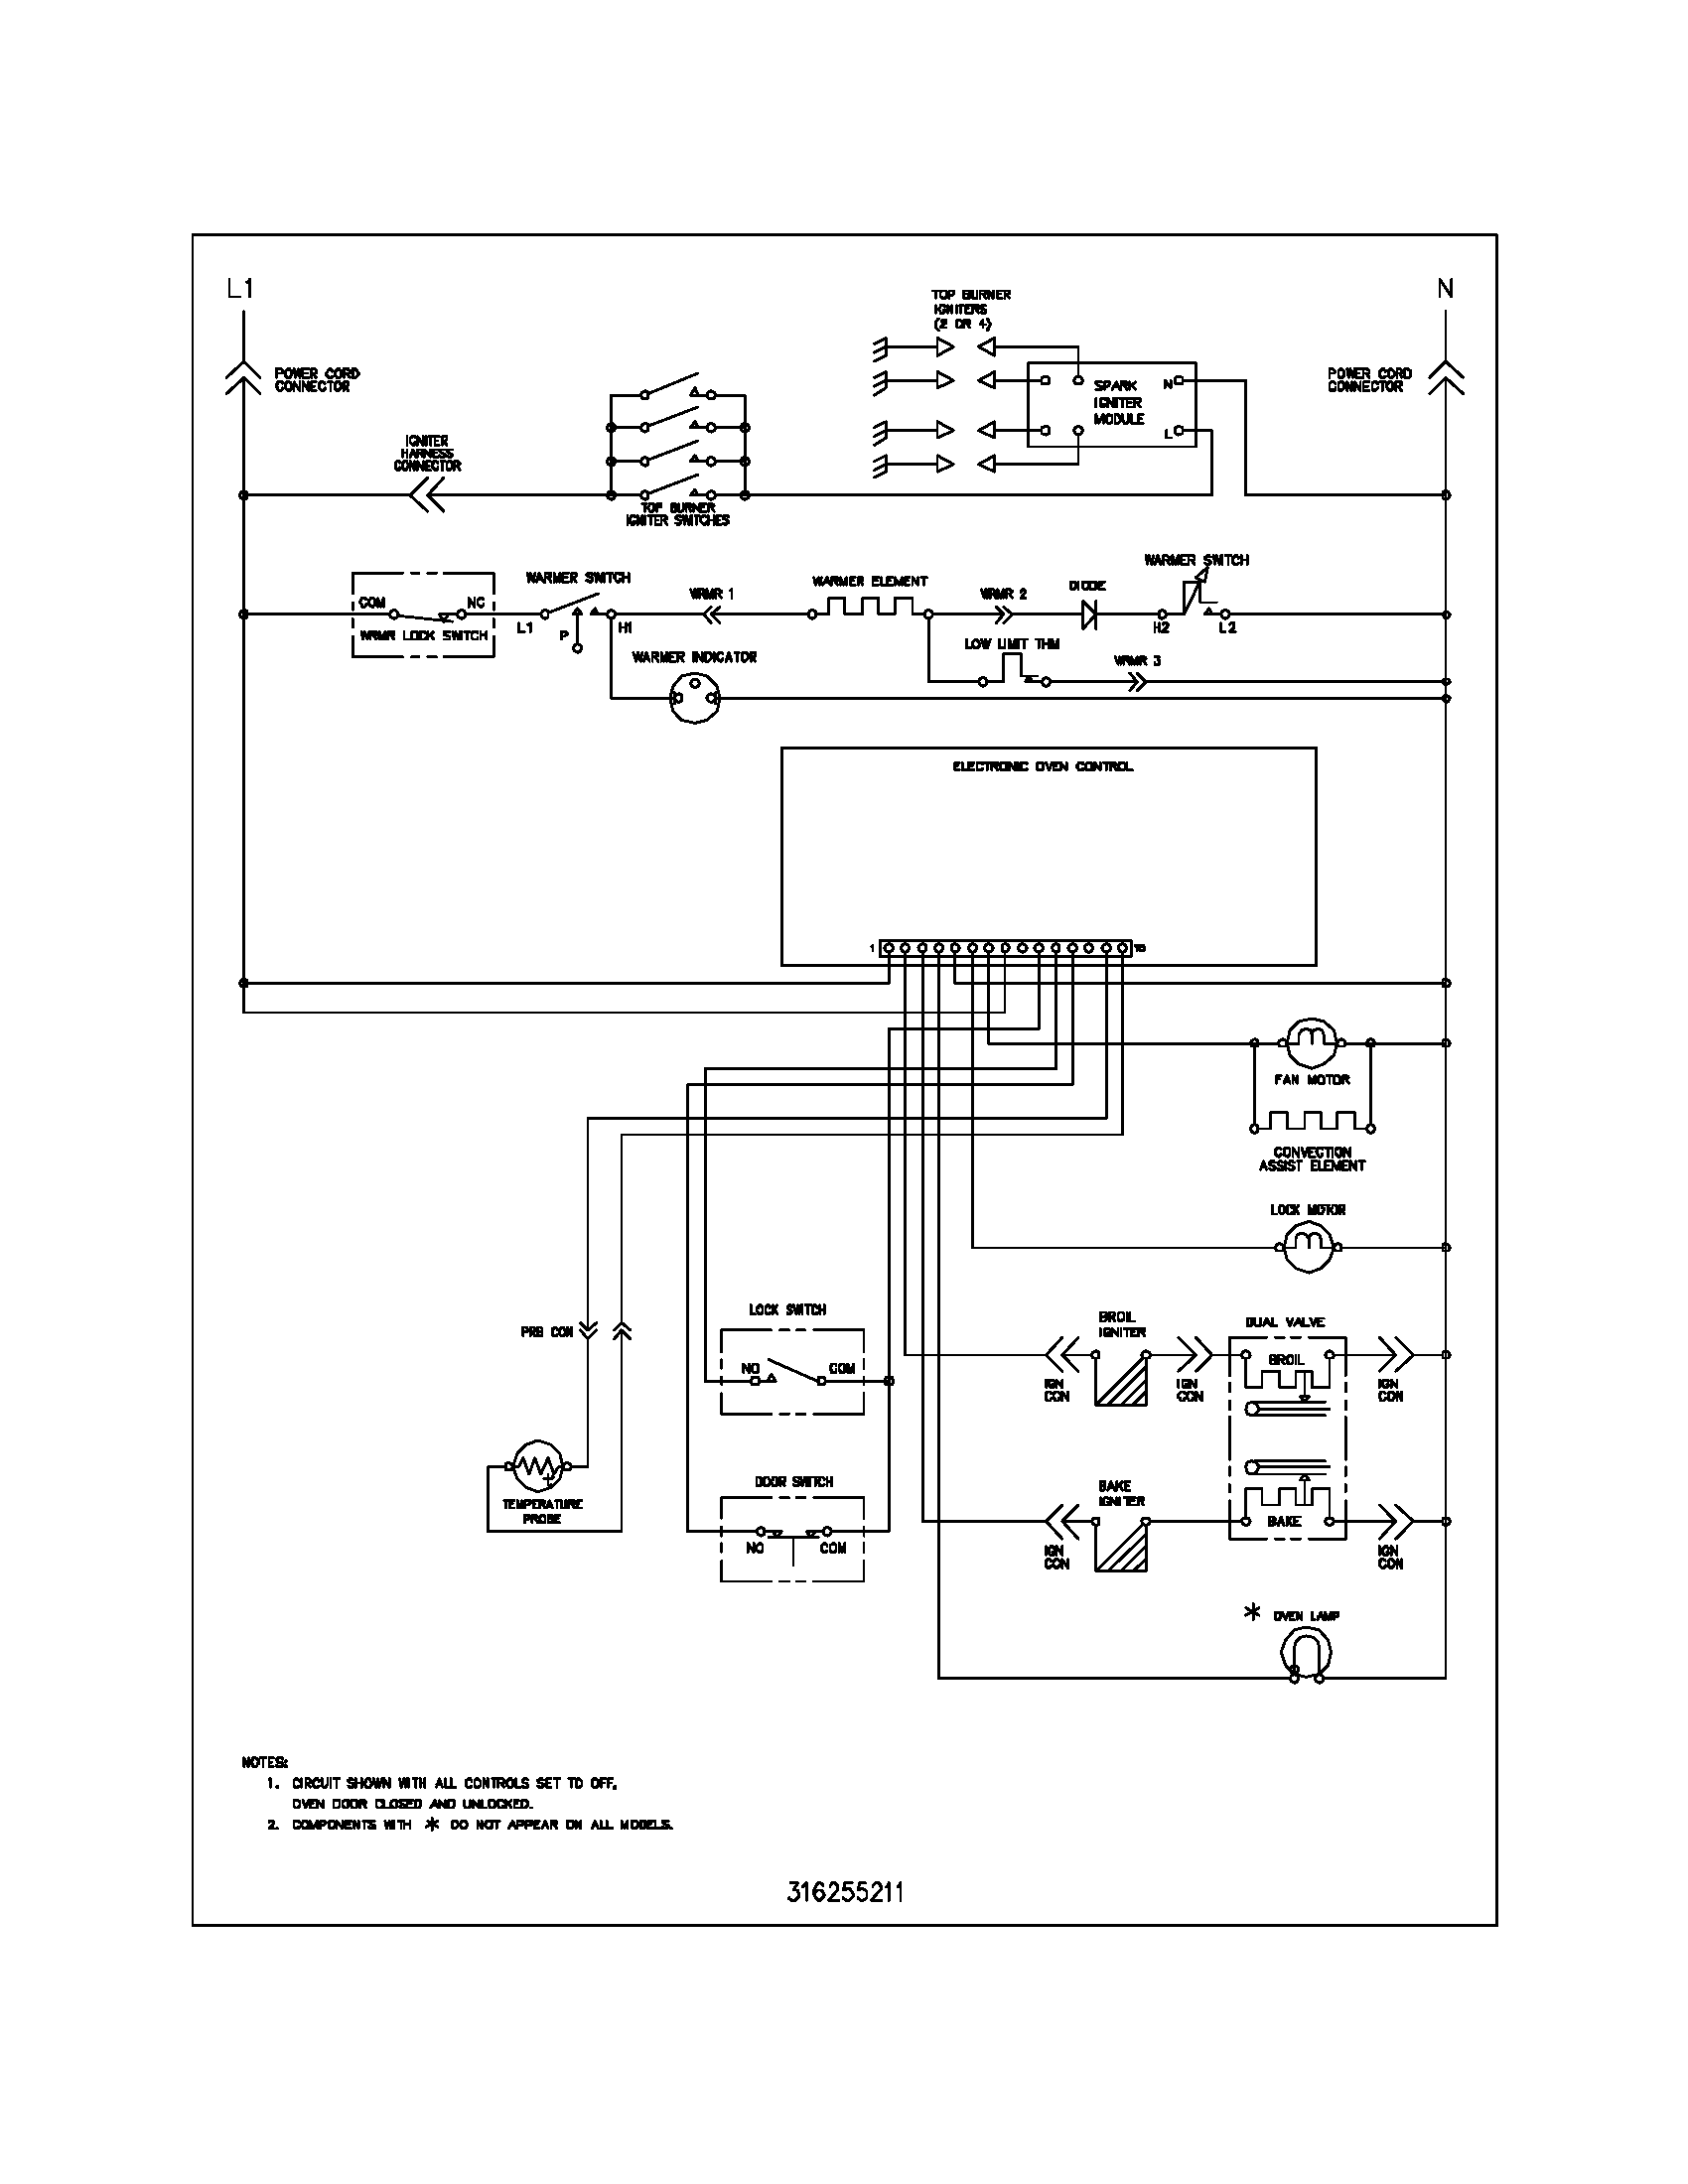 wiring schematic parts frigidaire plgf389ccc gas range timer stove clocks and appliance frigidaire freezer wiring diagram at n-0.co